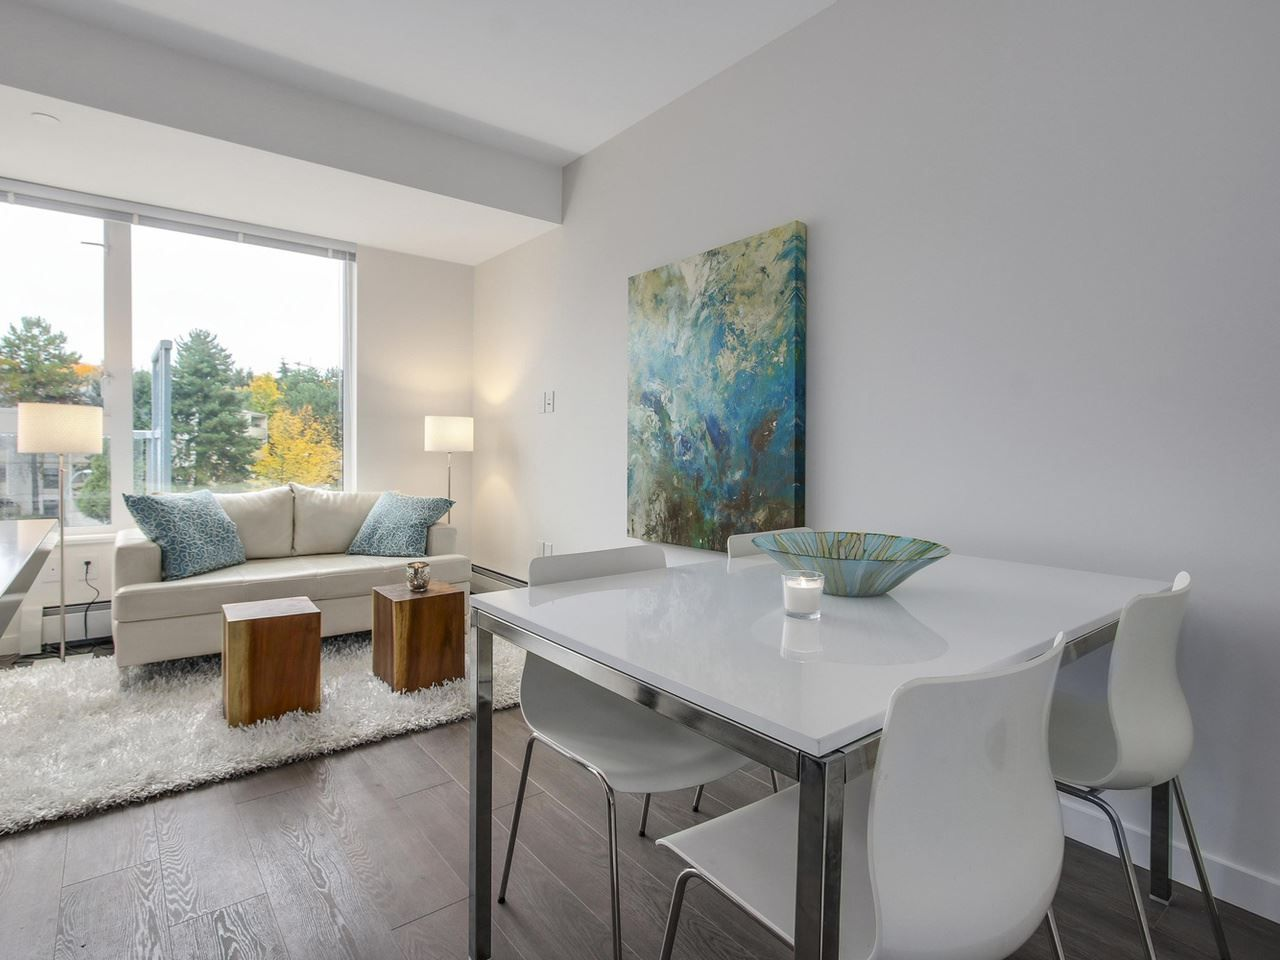 """Photo 4: Photos: 604 417 GREAT NORTHERN Way in Vancouver: Mount Pleasant VE Condo for sale in """"CANVAS"""" (Vancouver East)  : MLS®# R2118078"""